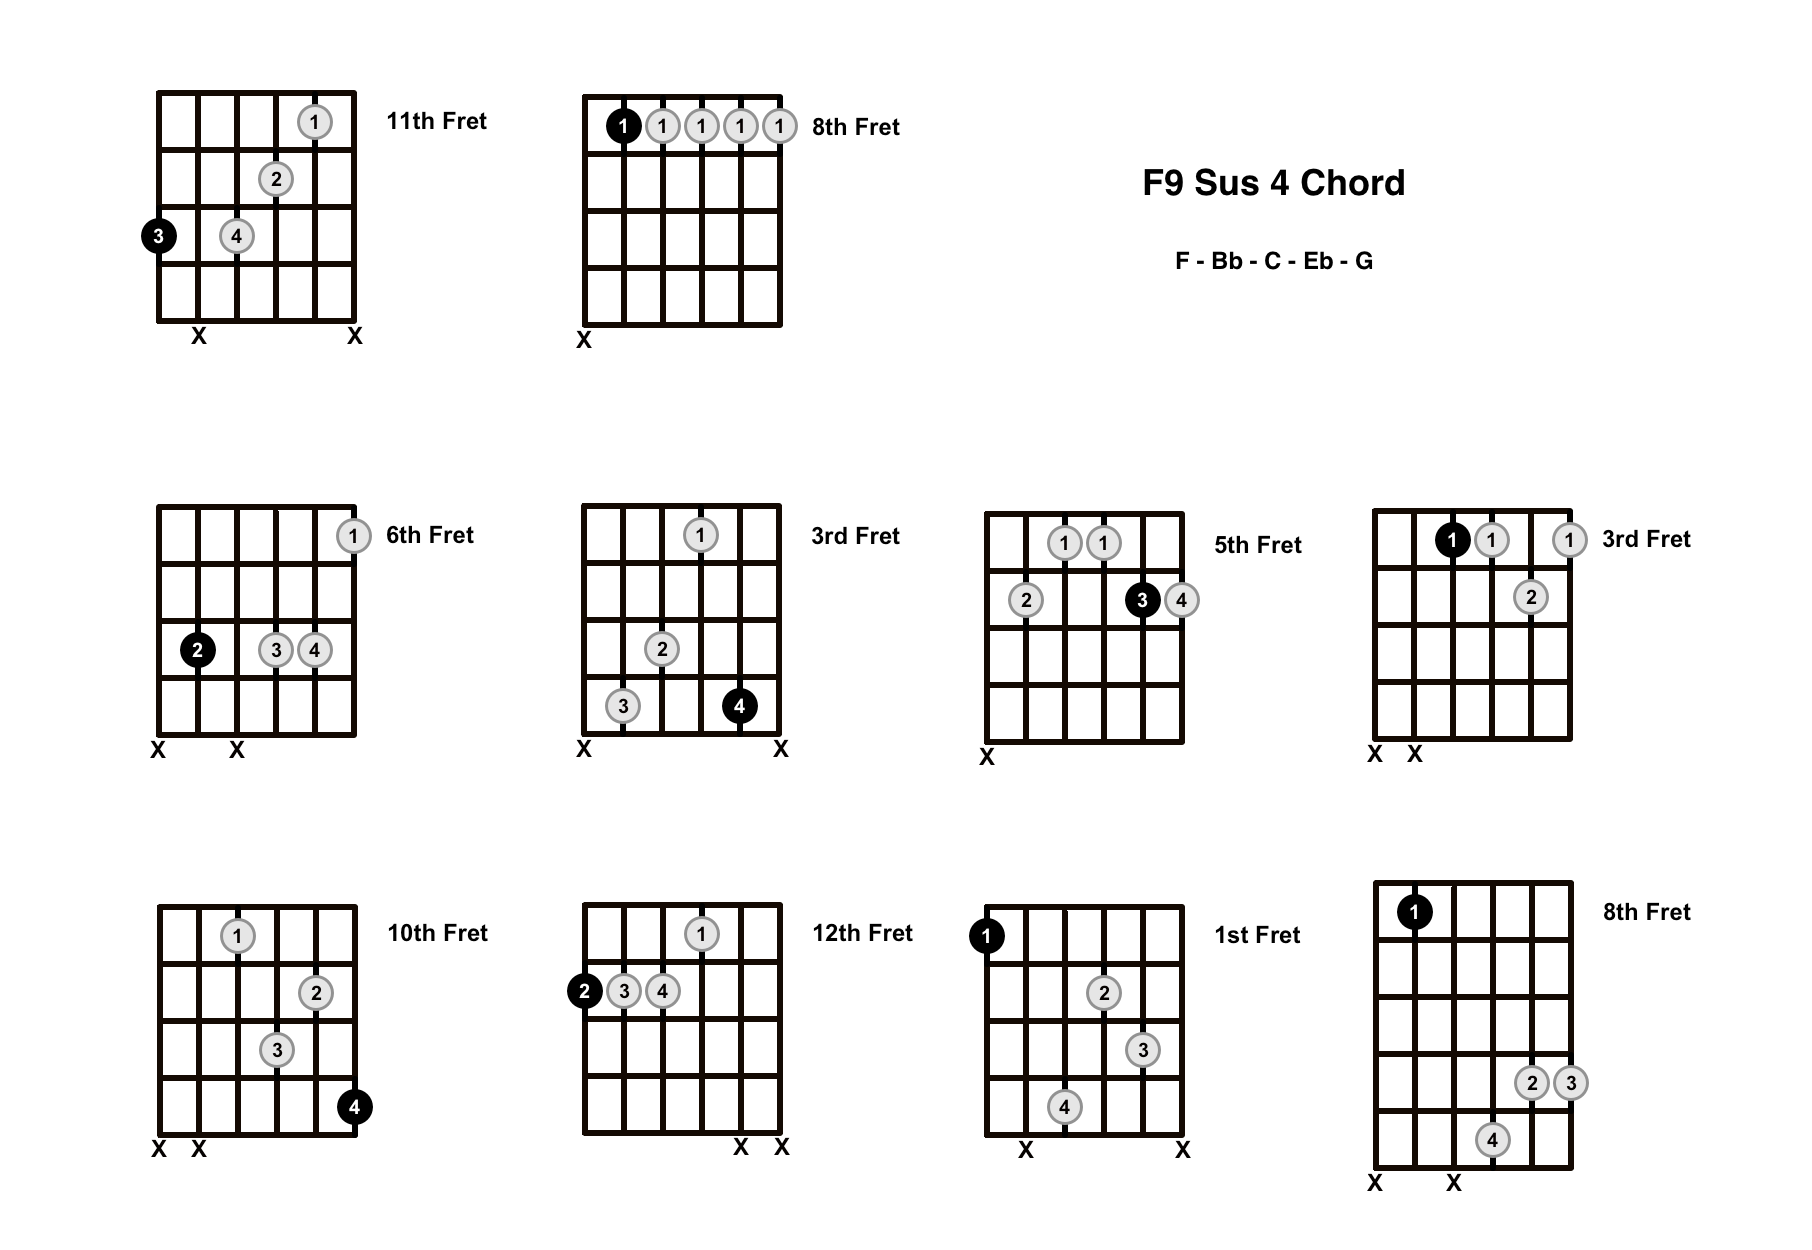 F9 Sus 4 Chord On The Guitar (F9 Suspended 4, Eb/F) – Diagrams, Finger Positions and Theory